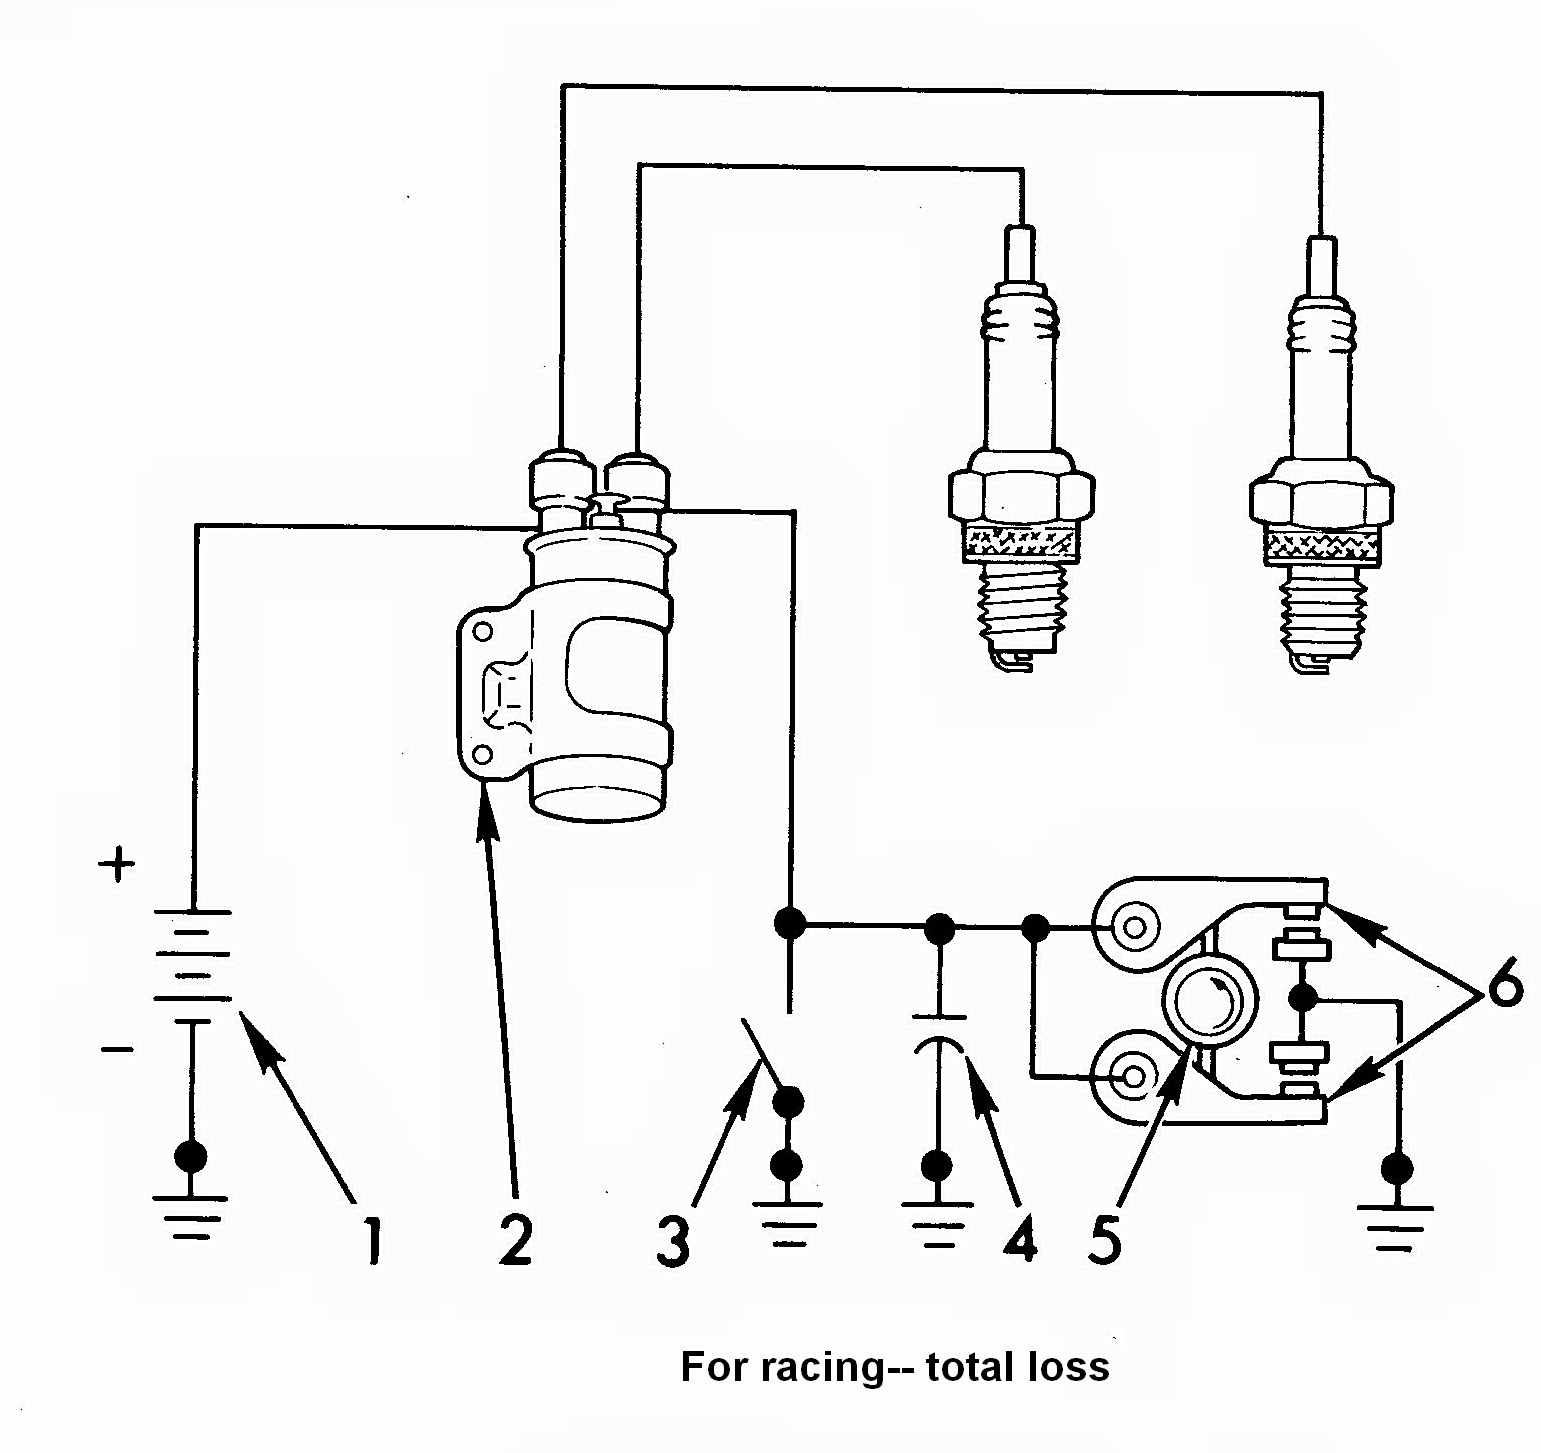 Points with dualfire coil dia only ignition coil wiring diagram points circuit and schematics diagram ford ignition coil wiring diagram at crackthecode.co